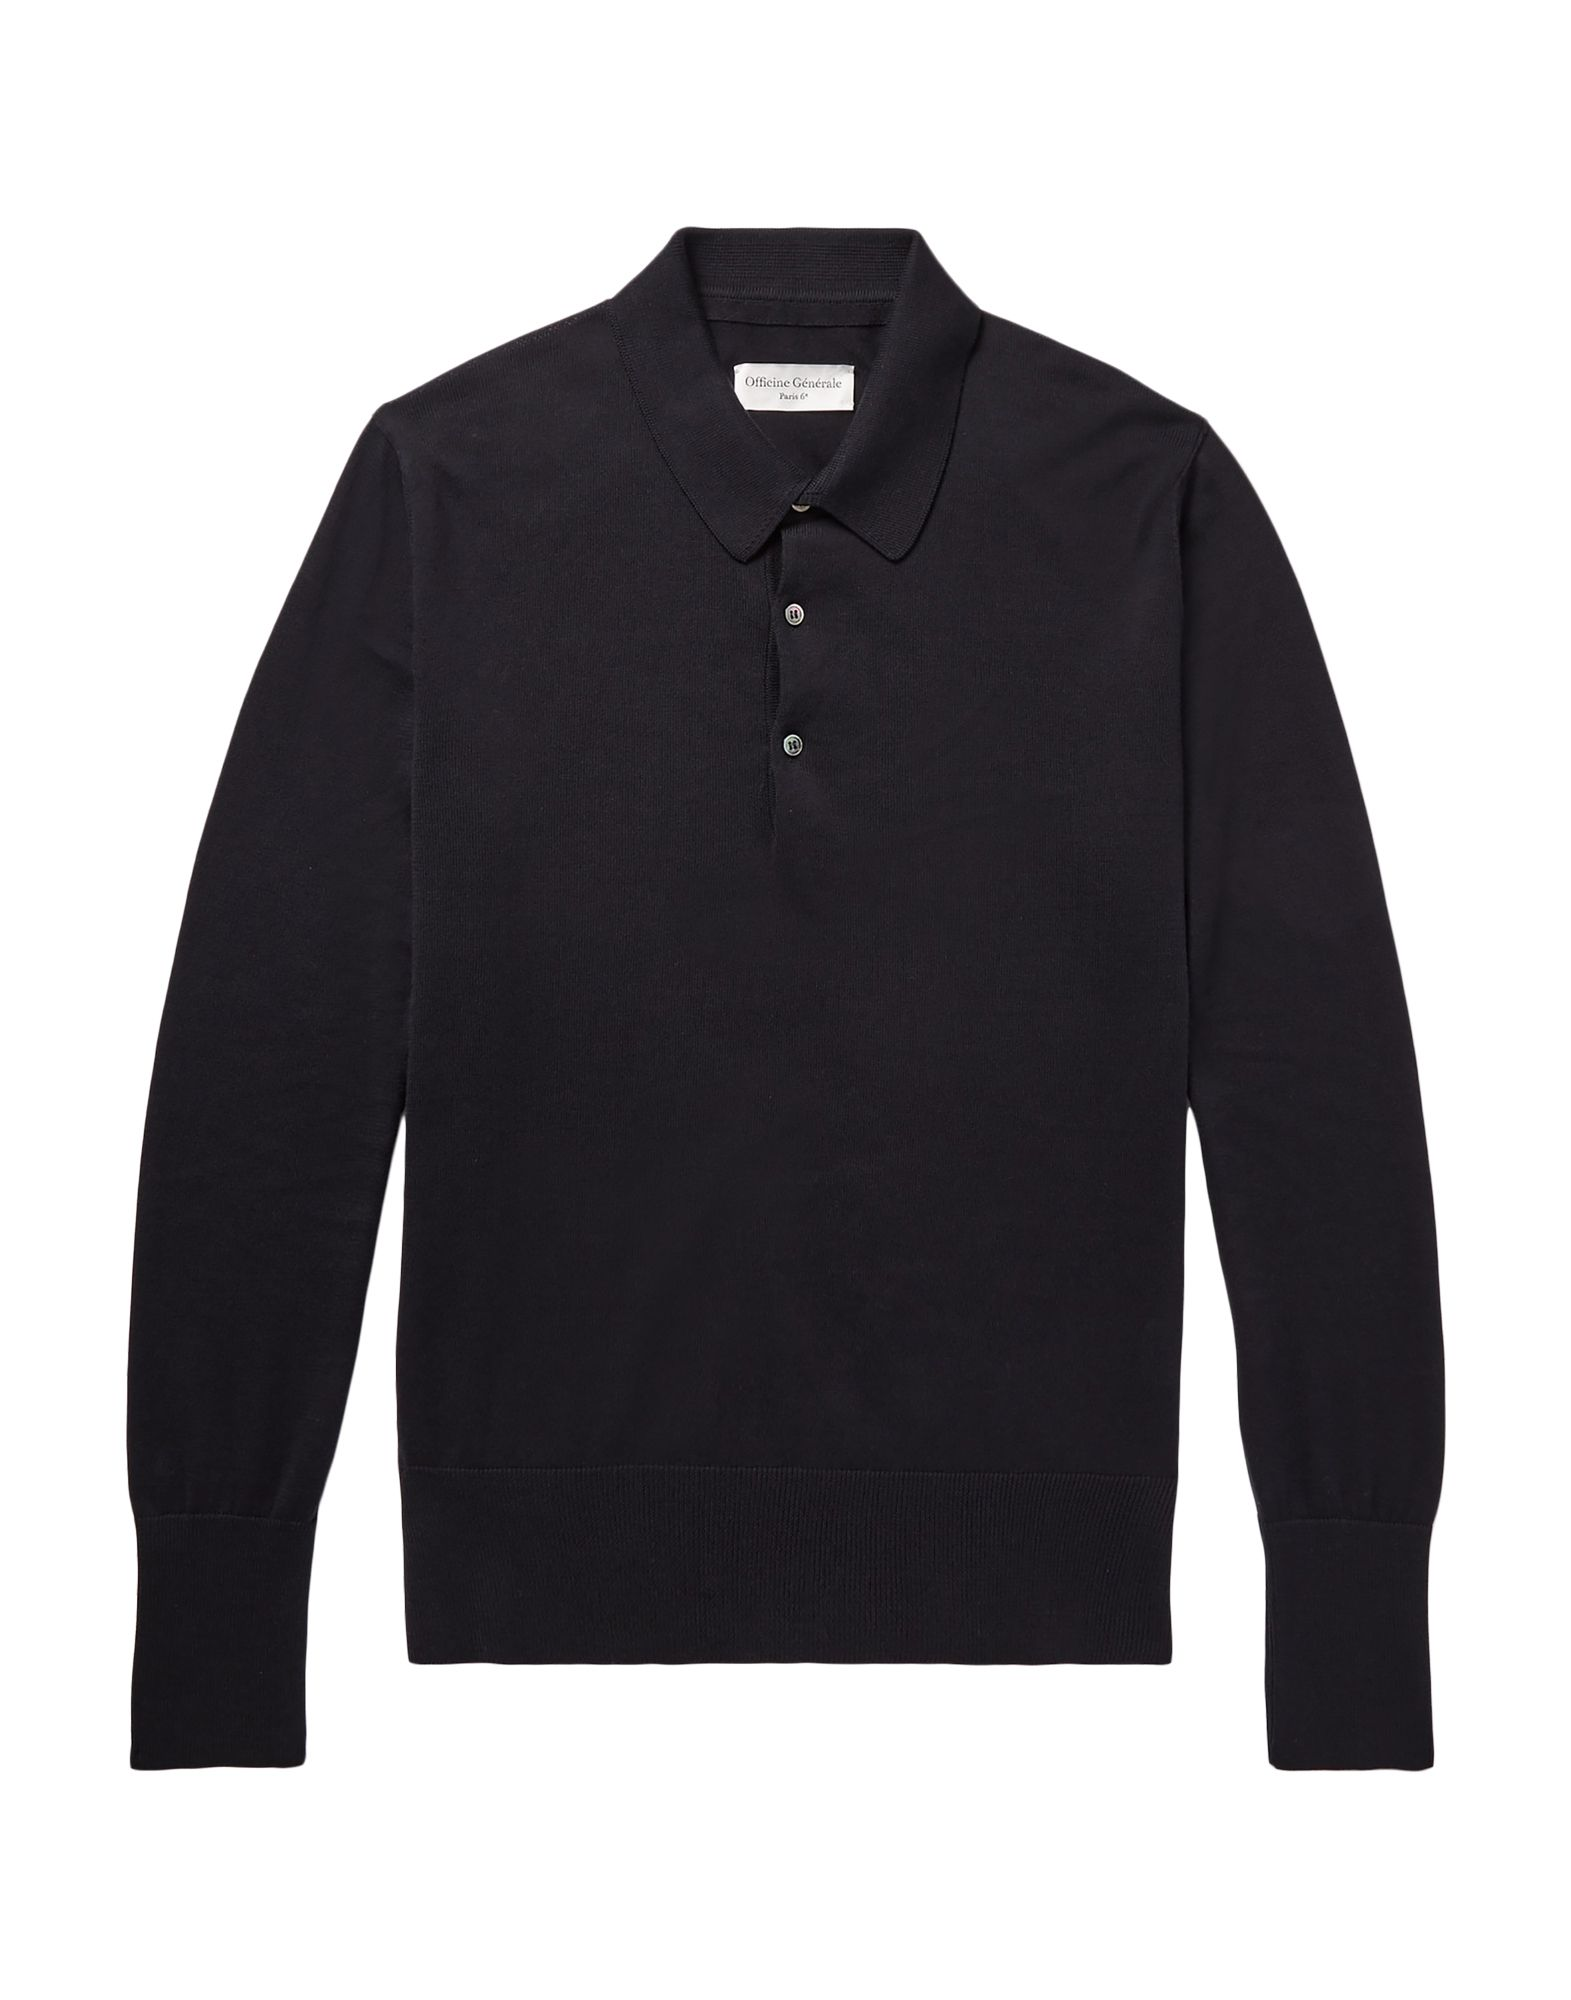 OFFICINE GÉNÉRALE Paris 6 Polo shirts. knitted, no appliqués, solid color, polo collar, long sleeves, front closure, knitted cuffs, button closing, no pockets, lightweight sweater. 100% Cotton